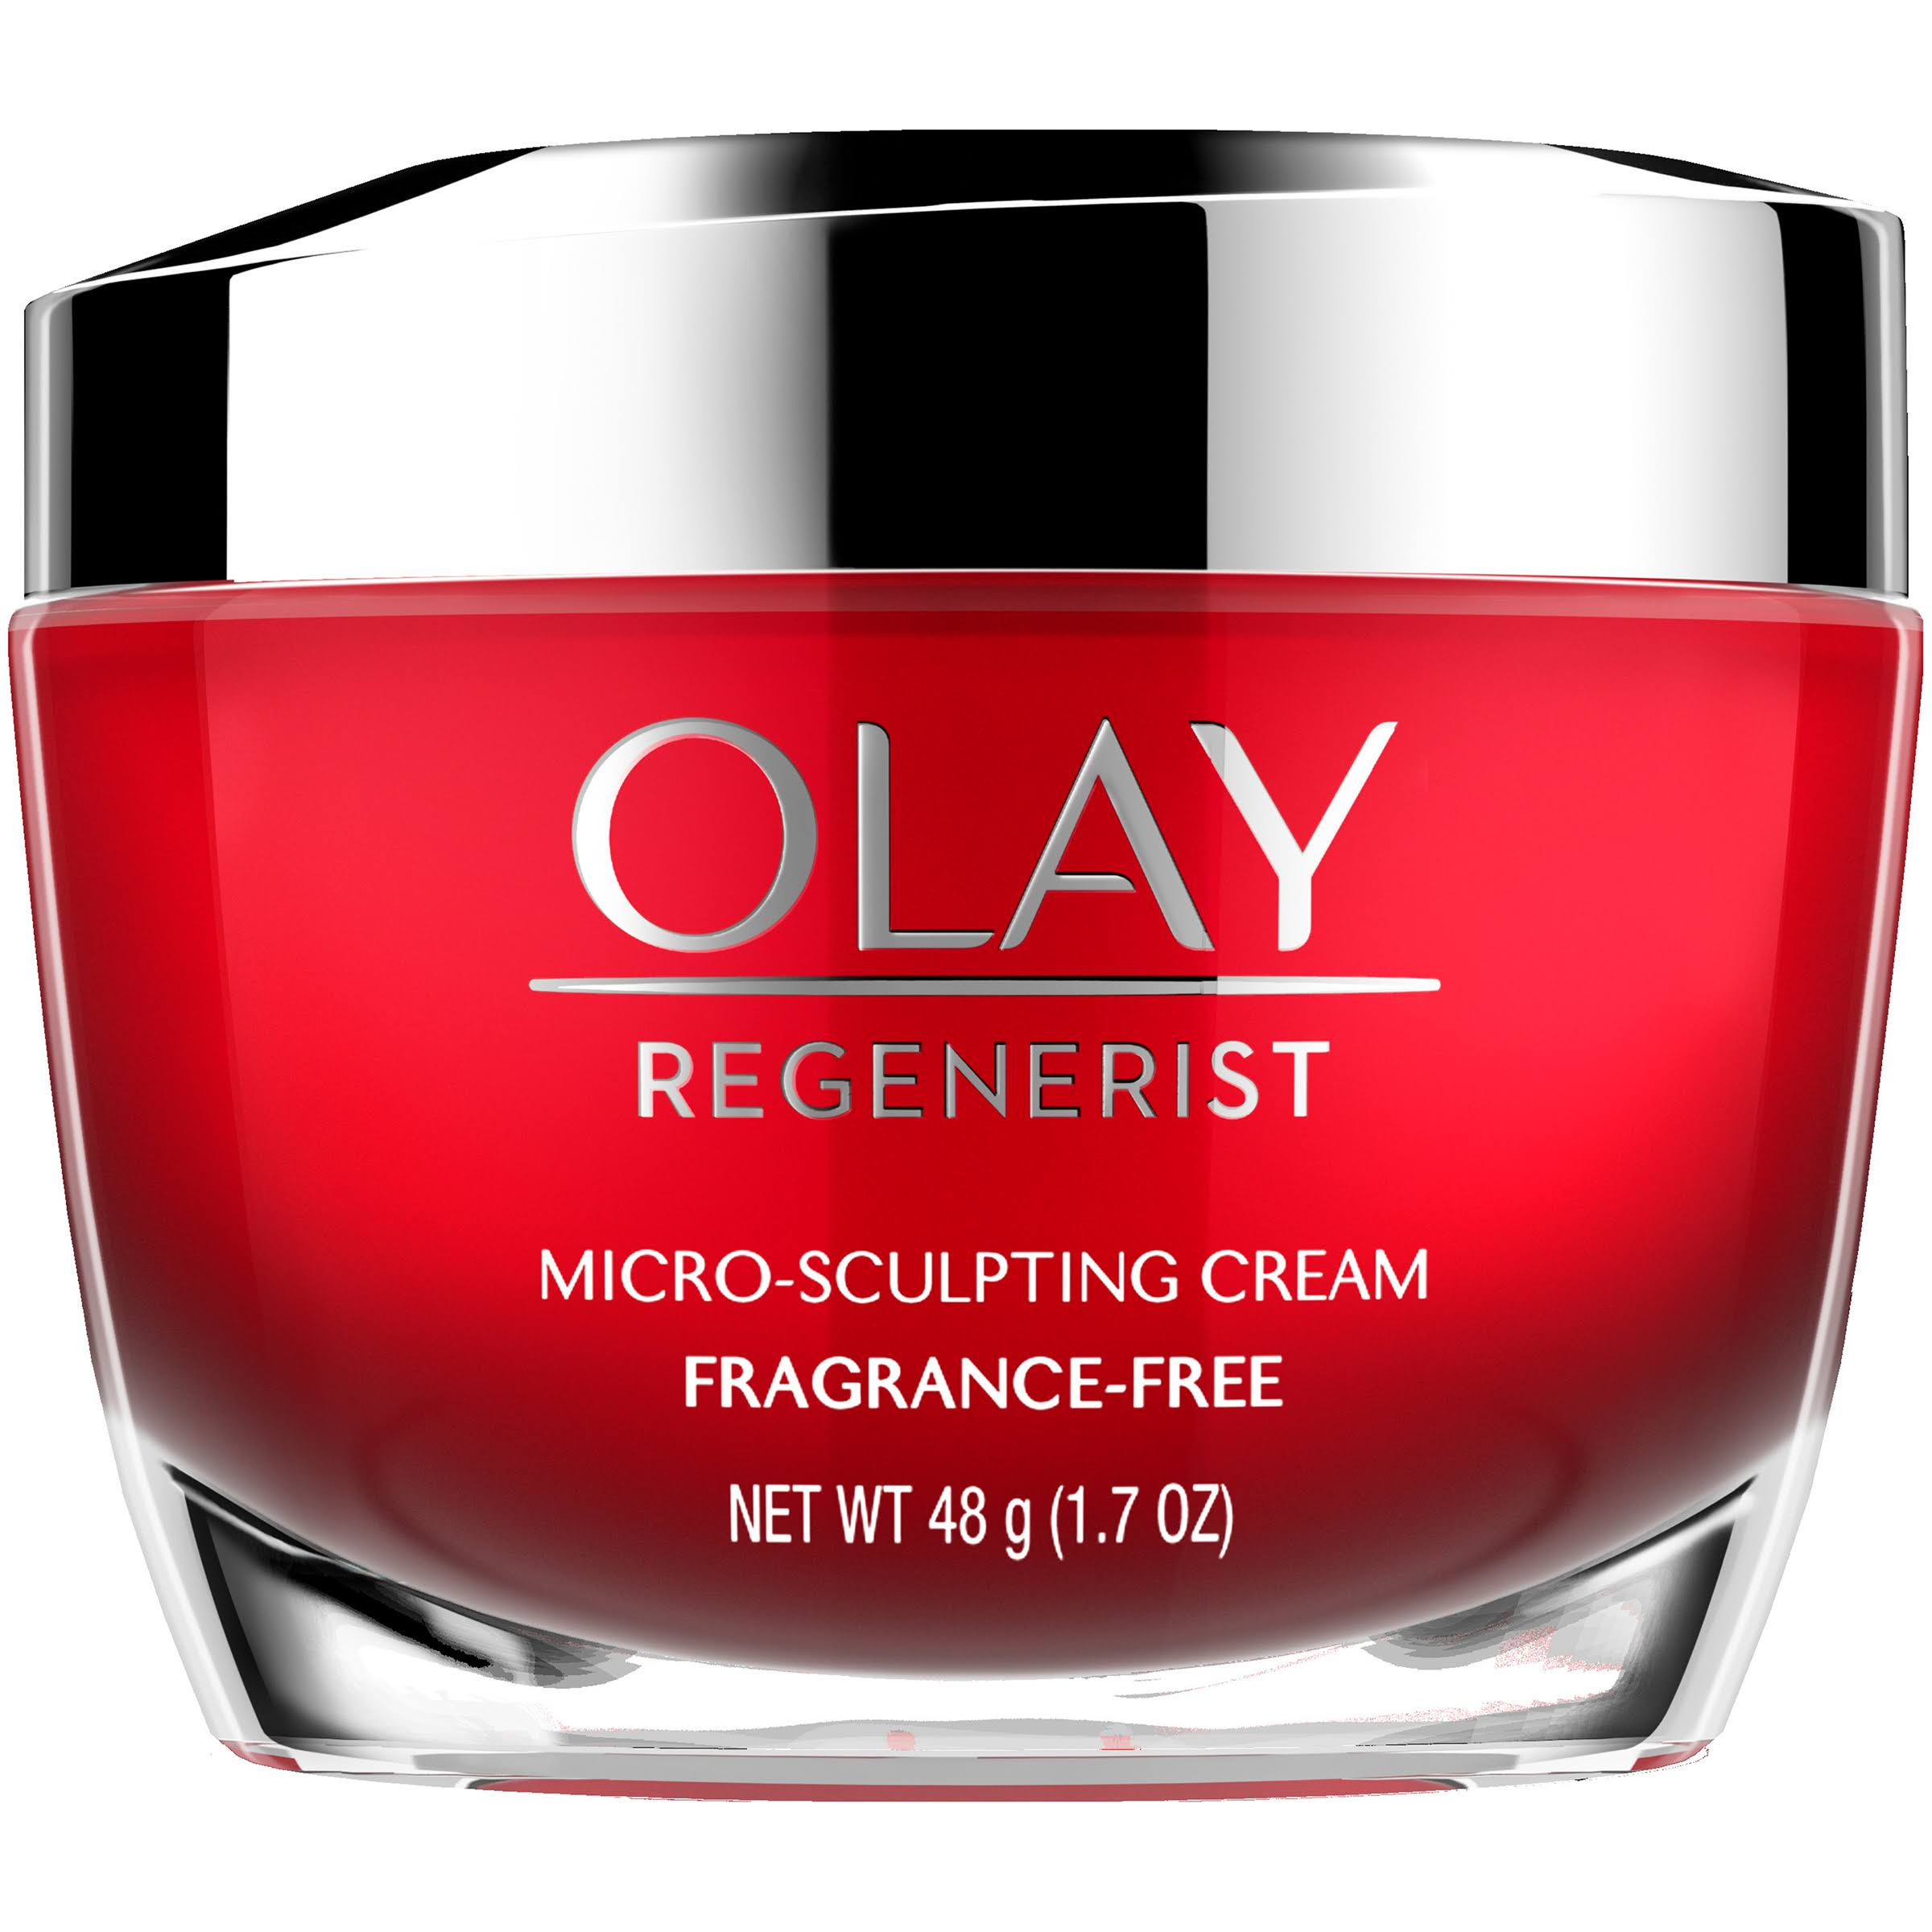 Olay Regenerist Advanced Anti Aging Micro Sculpting Cream - 1.7oz